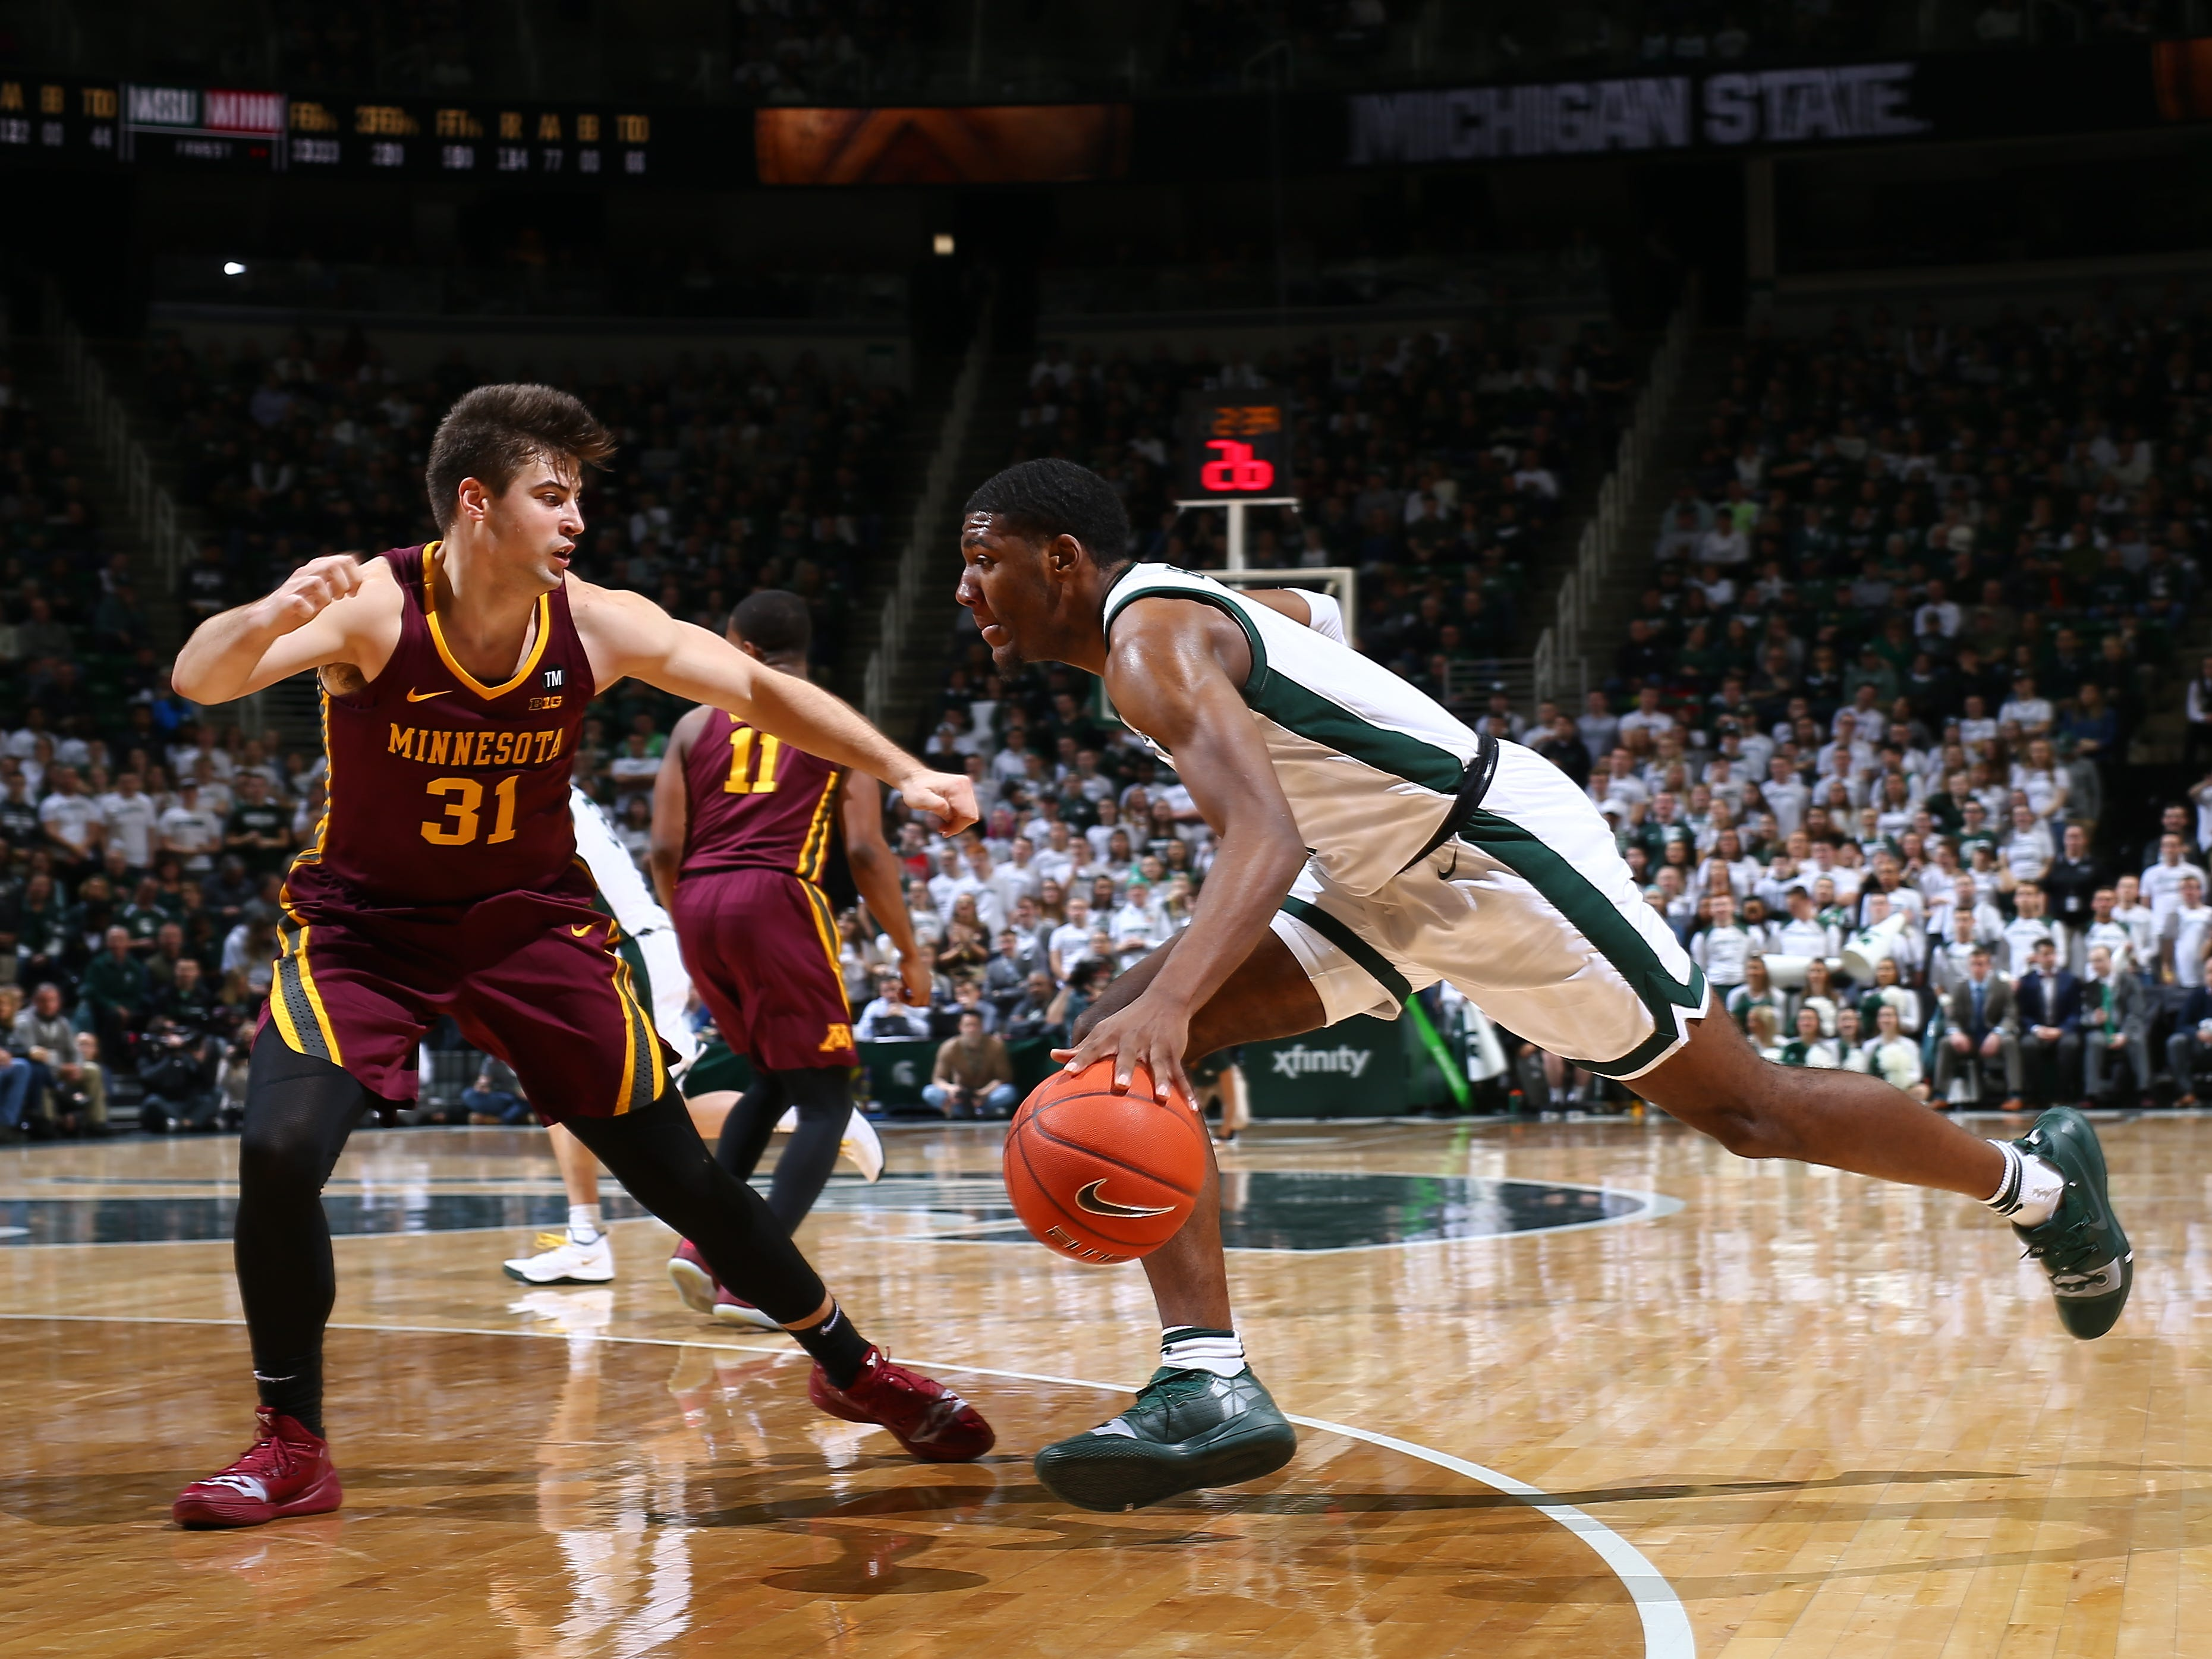 AAron Henry of the Michigan State Spartans drives to the basket while defended by Brock Stull in the first half.